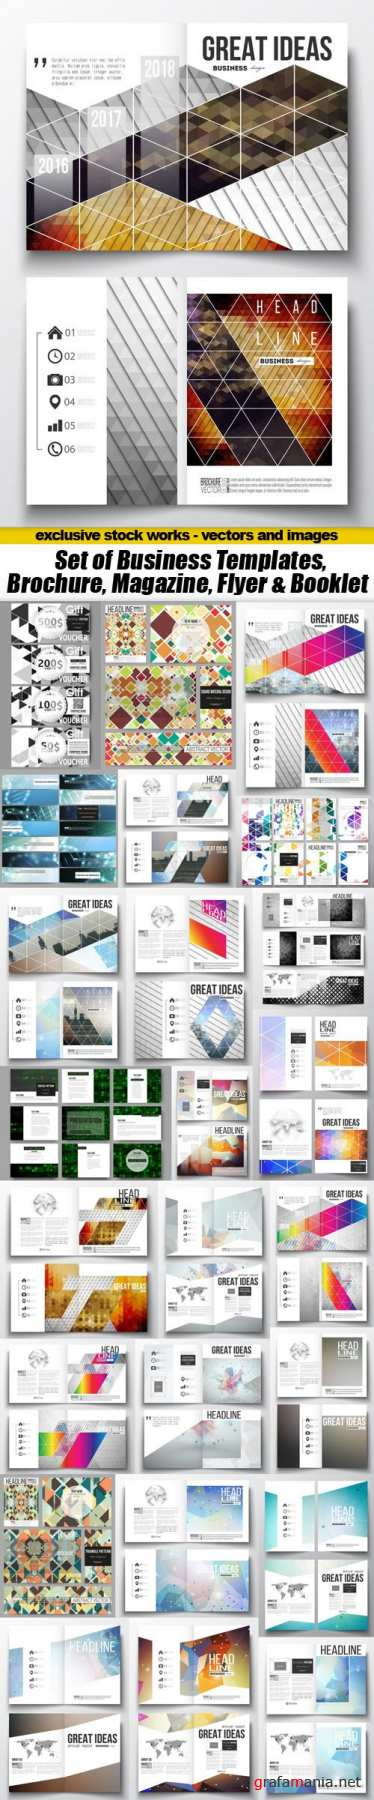 Set of Business Templates, Brochure, Magazine, Flyer & Booklet - 25xEPS